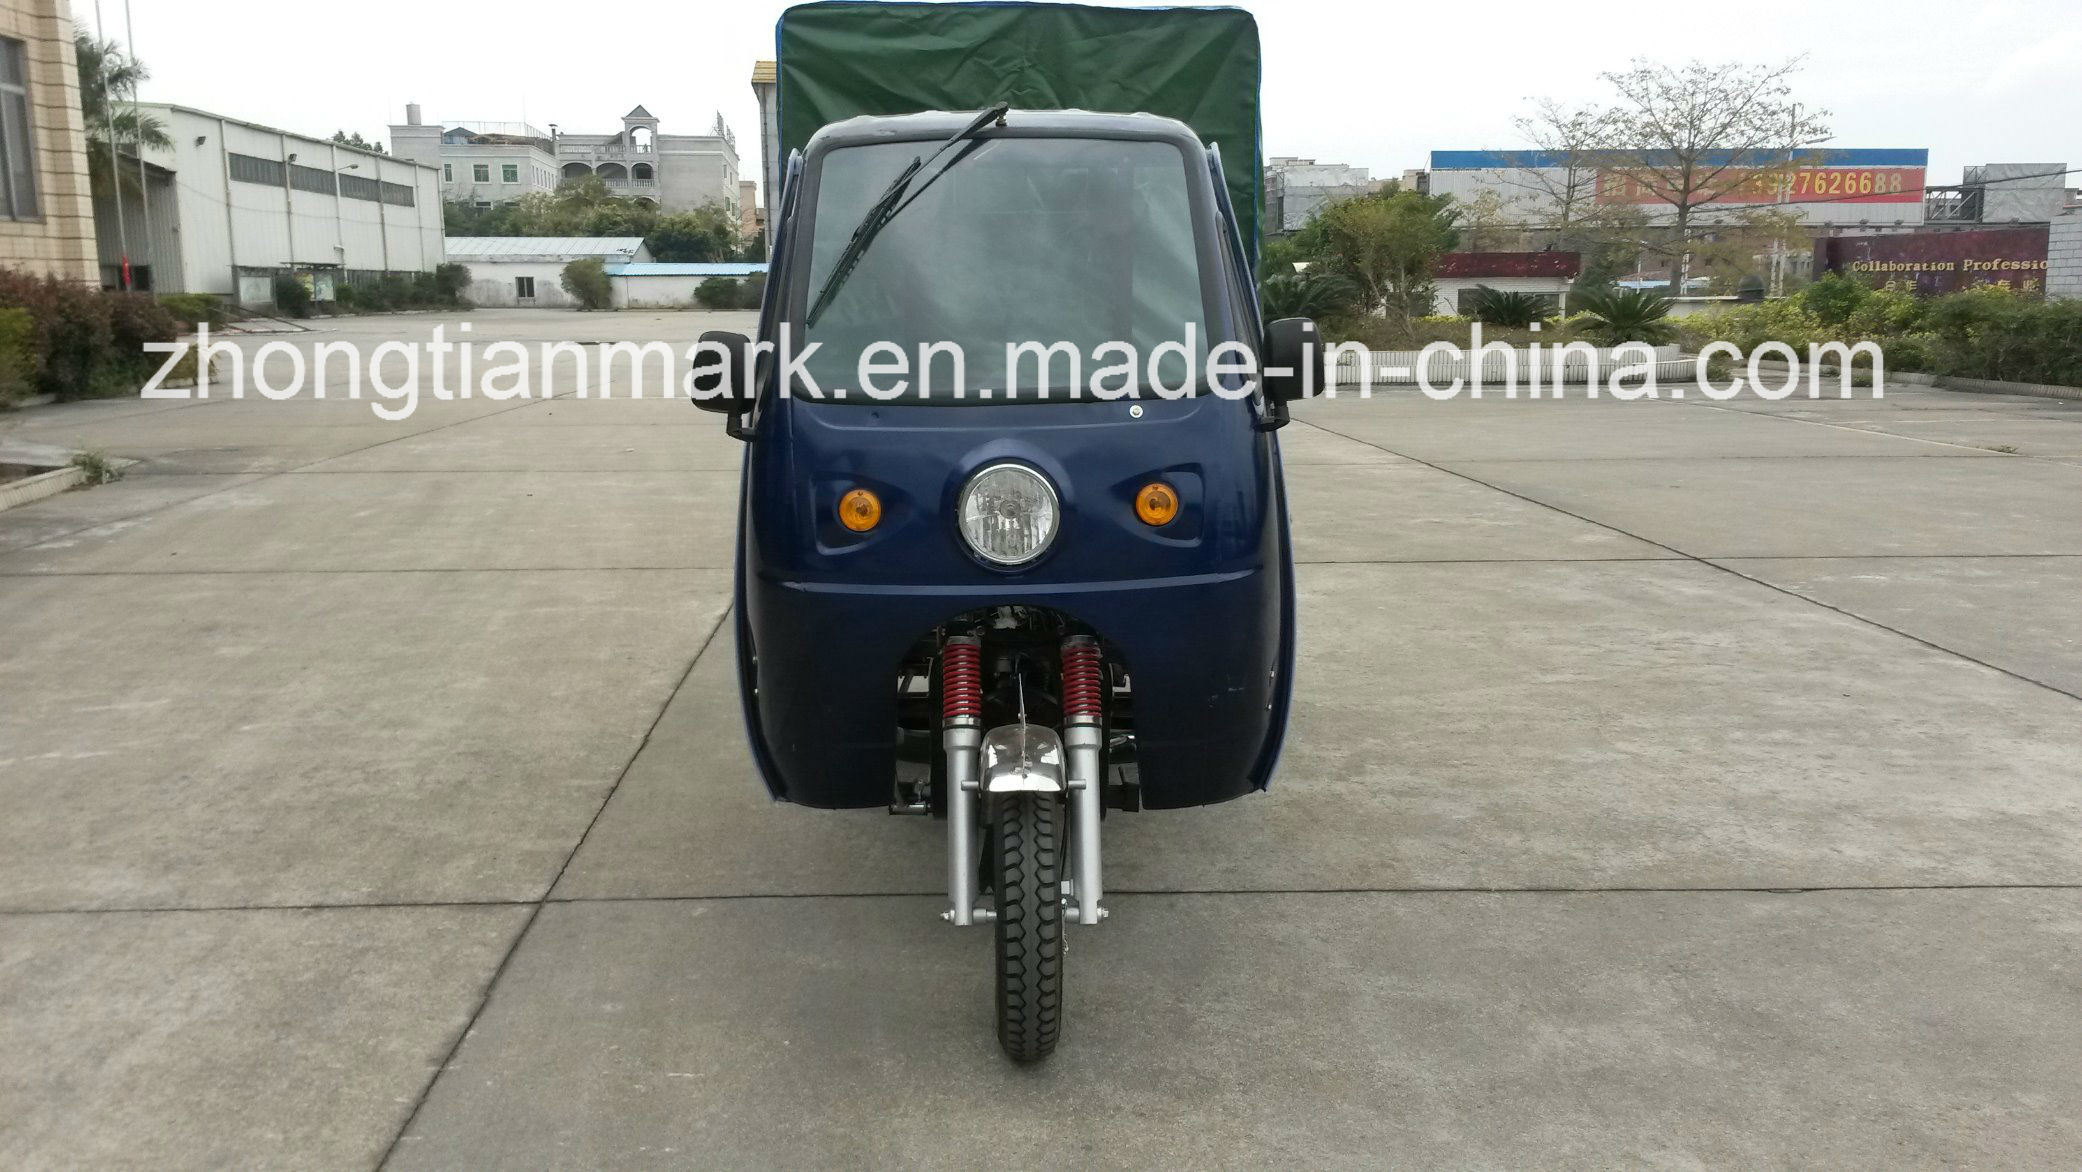 Popular Tricycle for Goods and Passenger